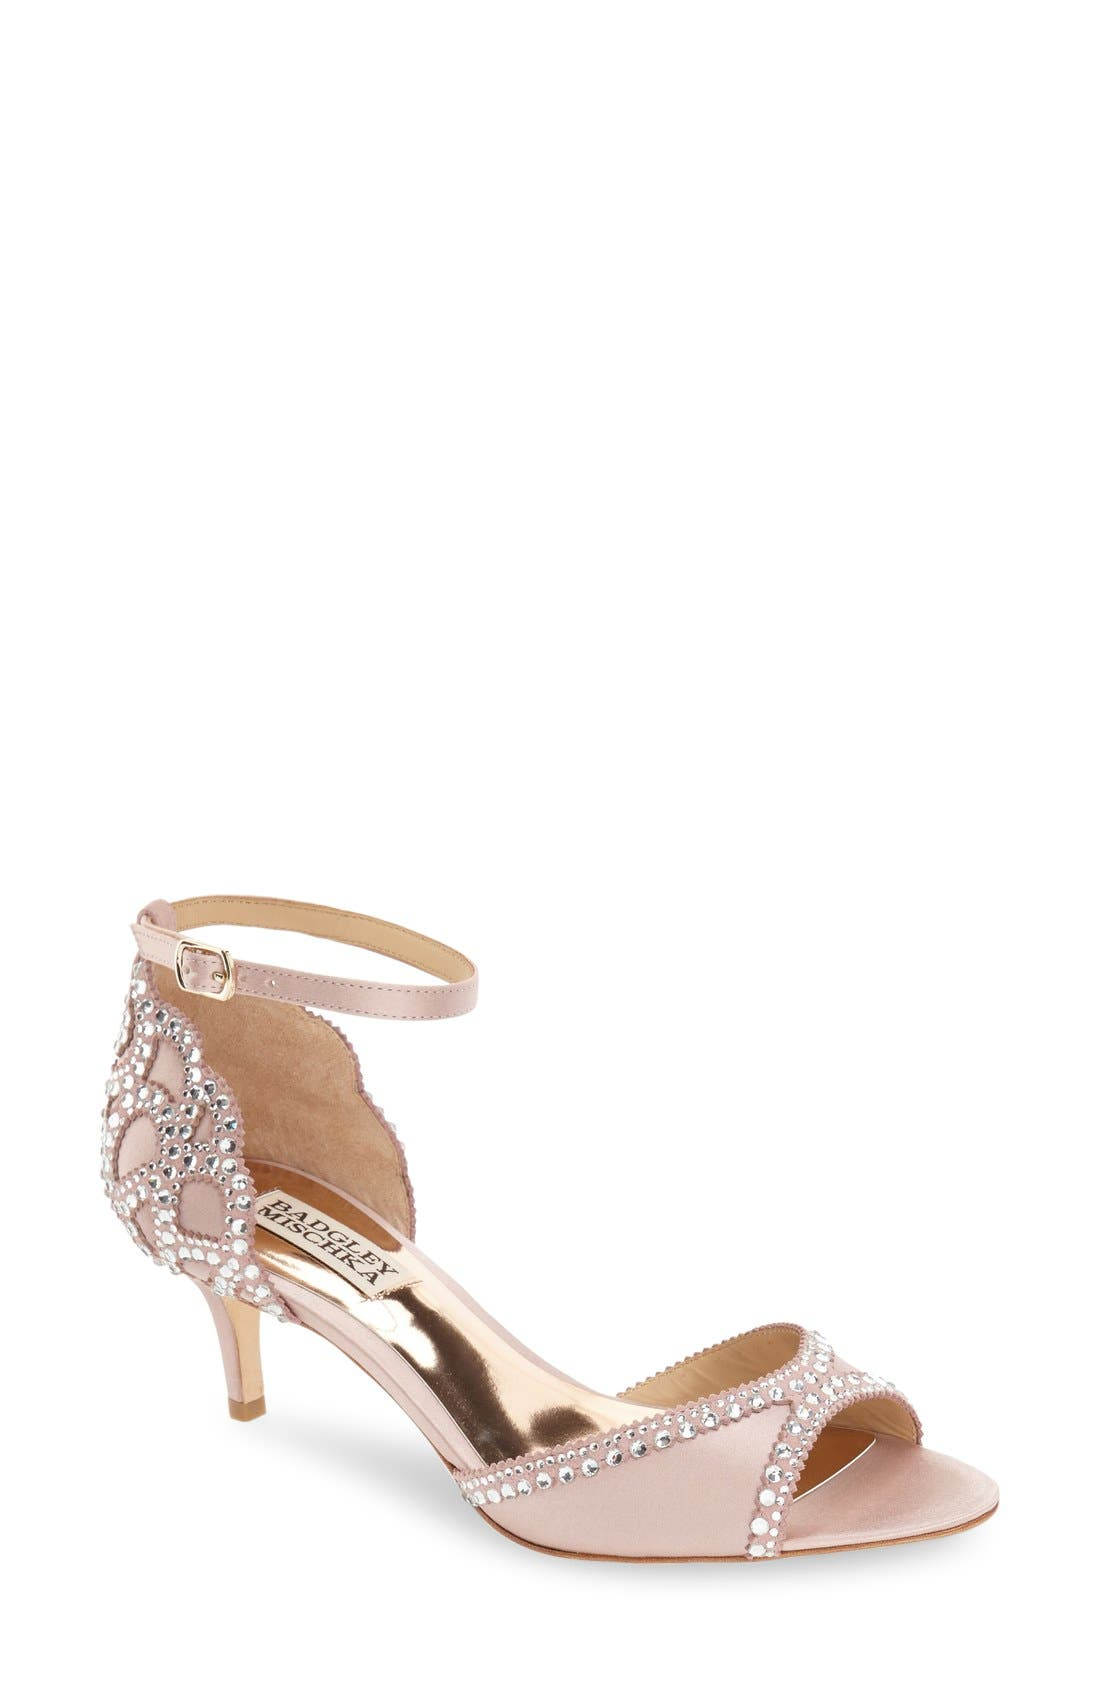 'Gillian' Crystal Embellished d'Orsay Sandal,                         Main,                         color, BLUSH SATIN